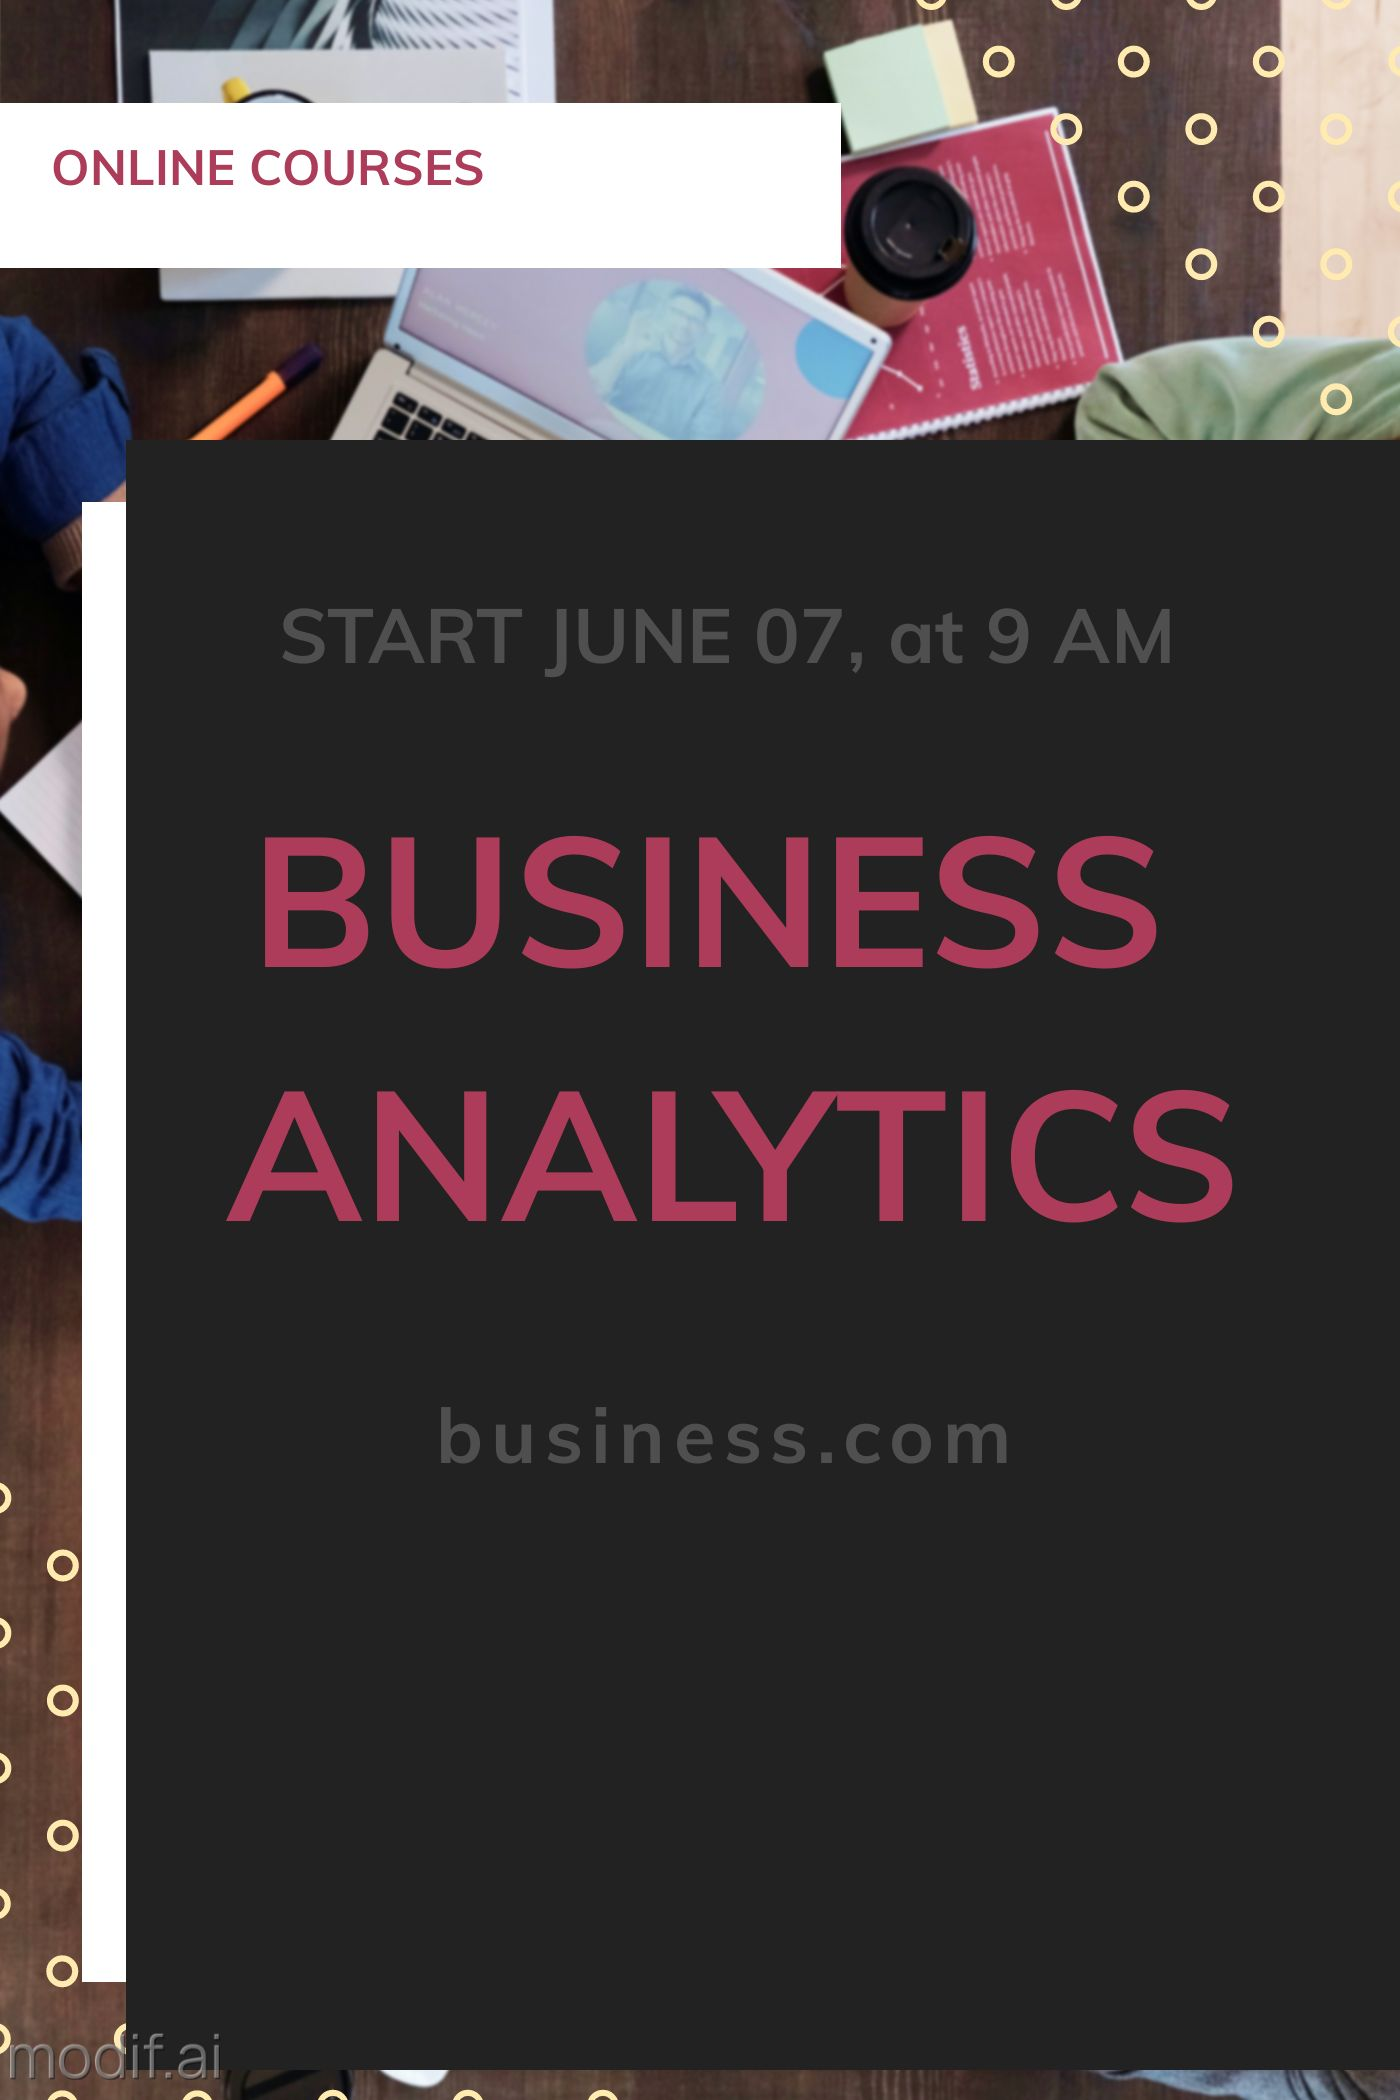 Business Intelligence Course Cover Template